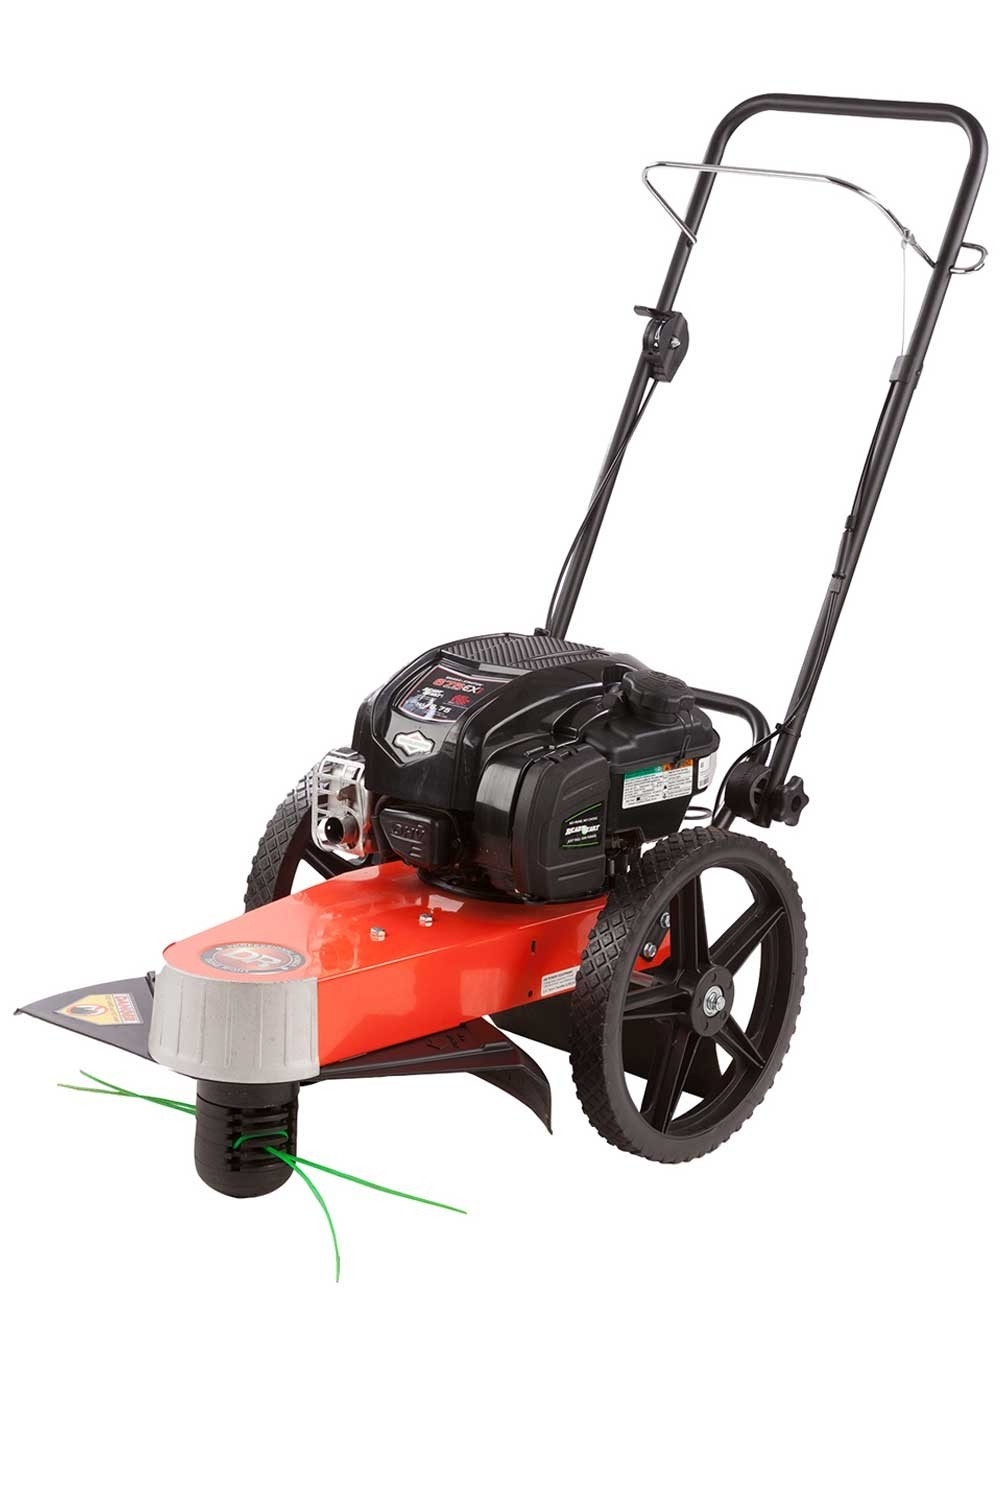 DR 6 75 Wheeled Trimmer / Mower